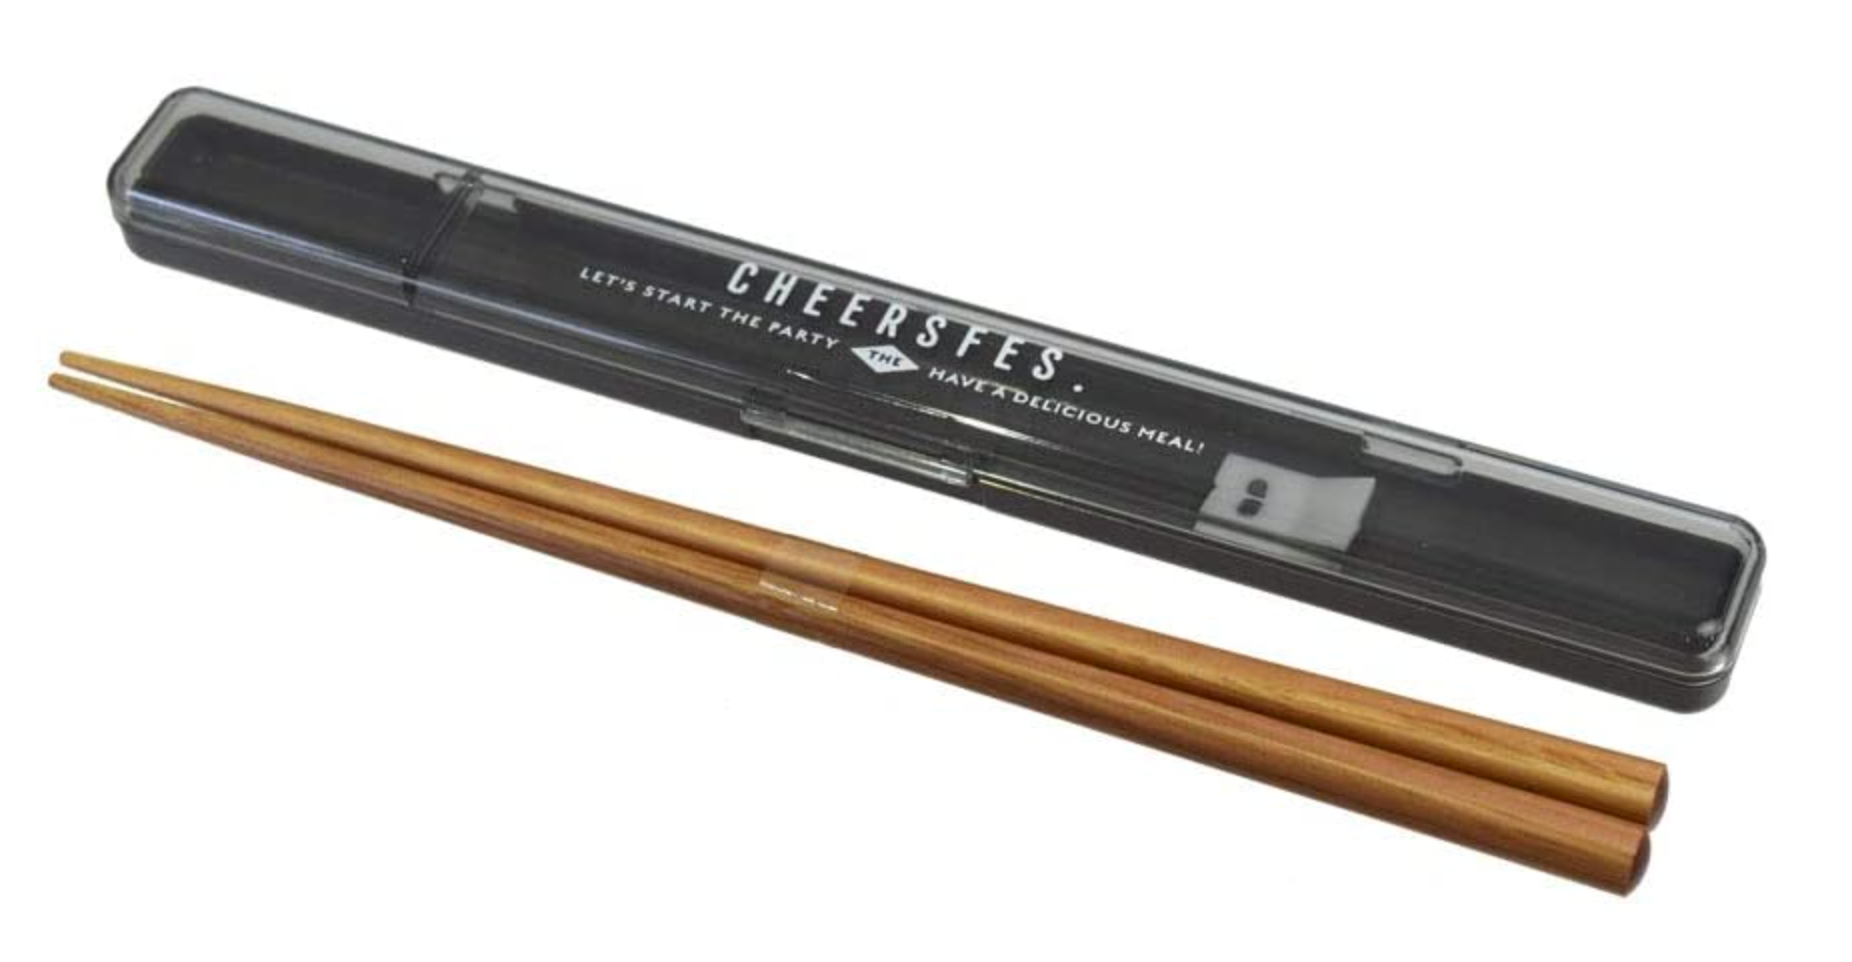 Cheers Fes Chopsticks | Gray Case